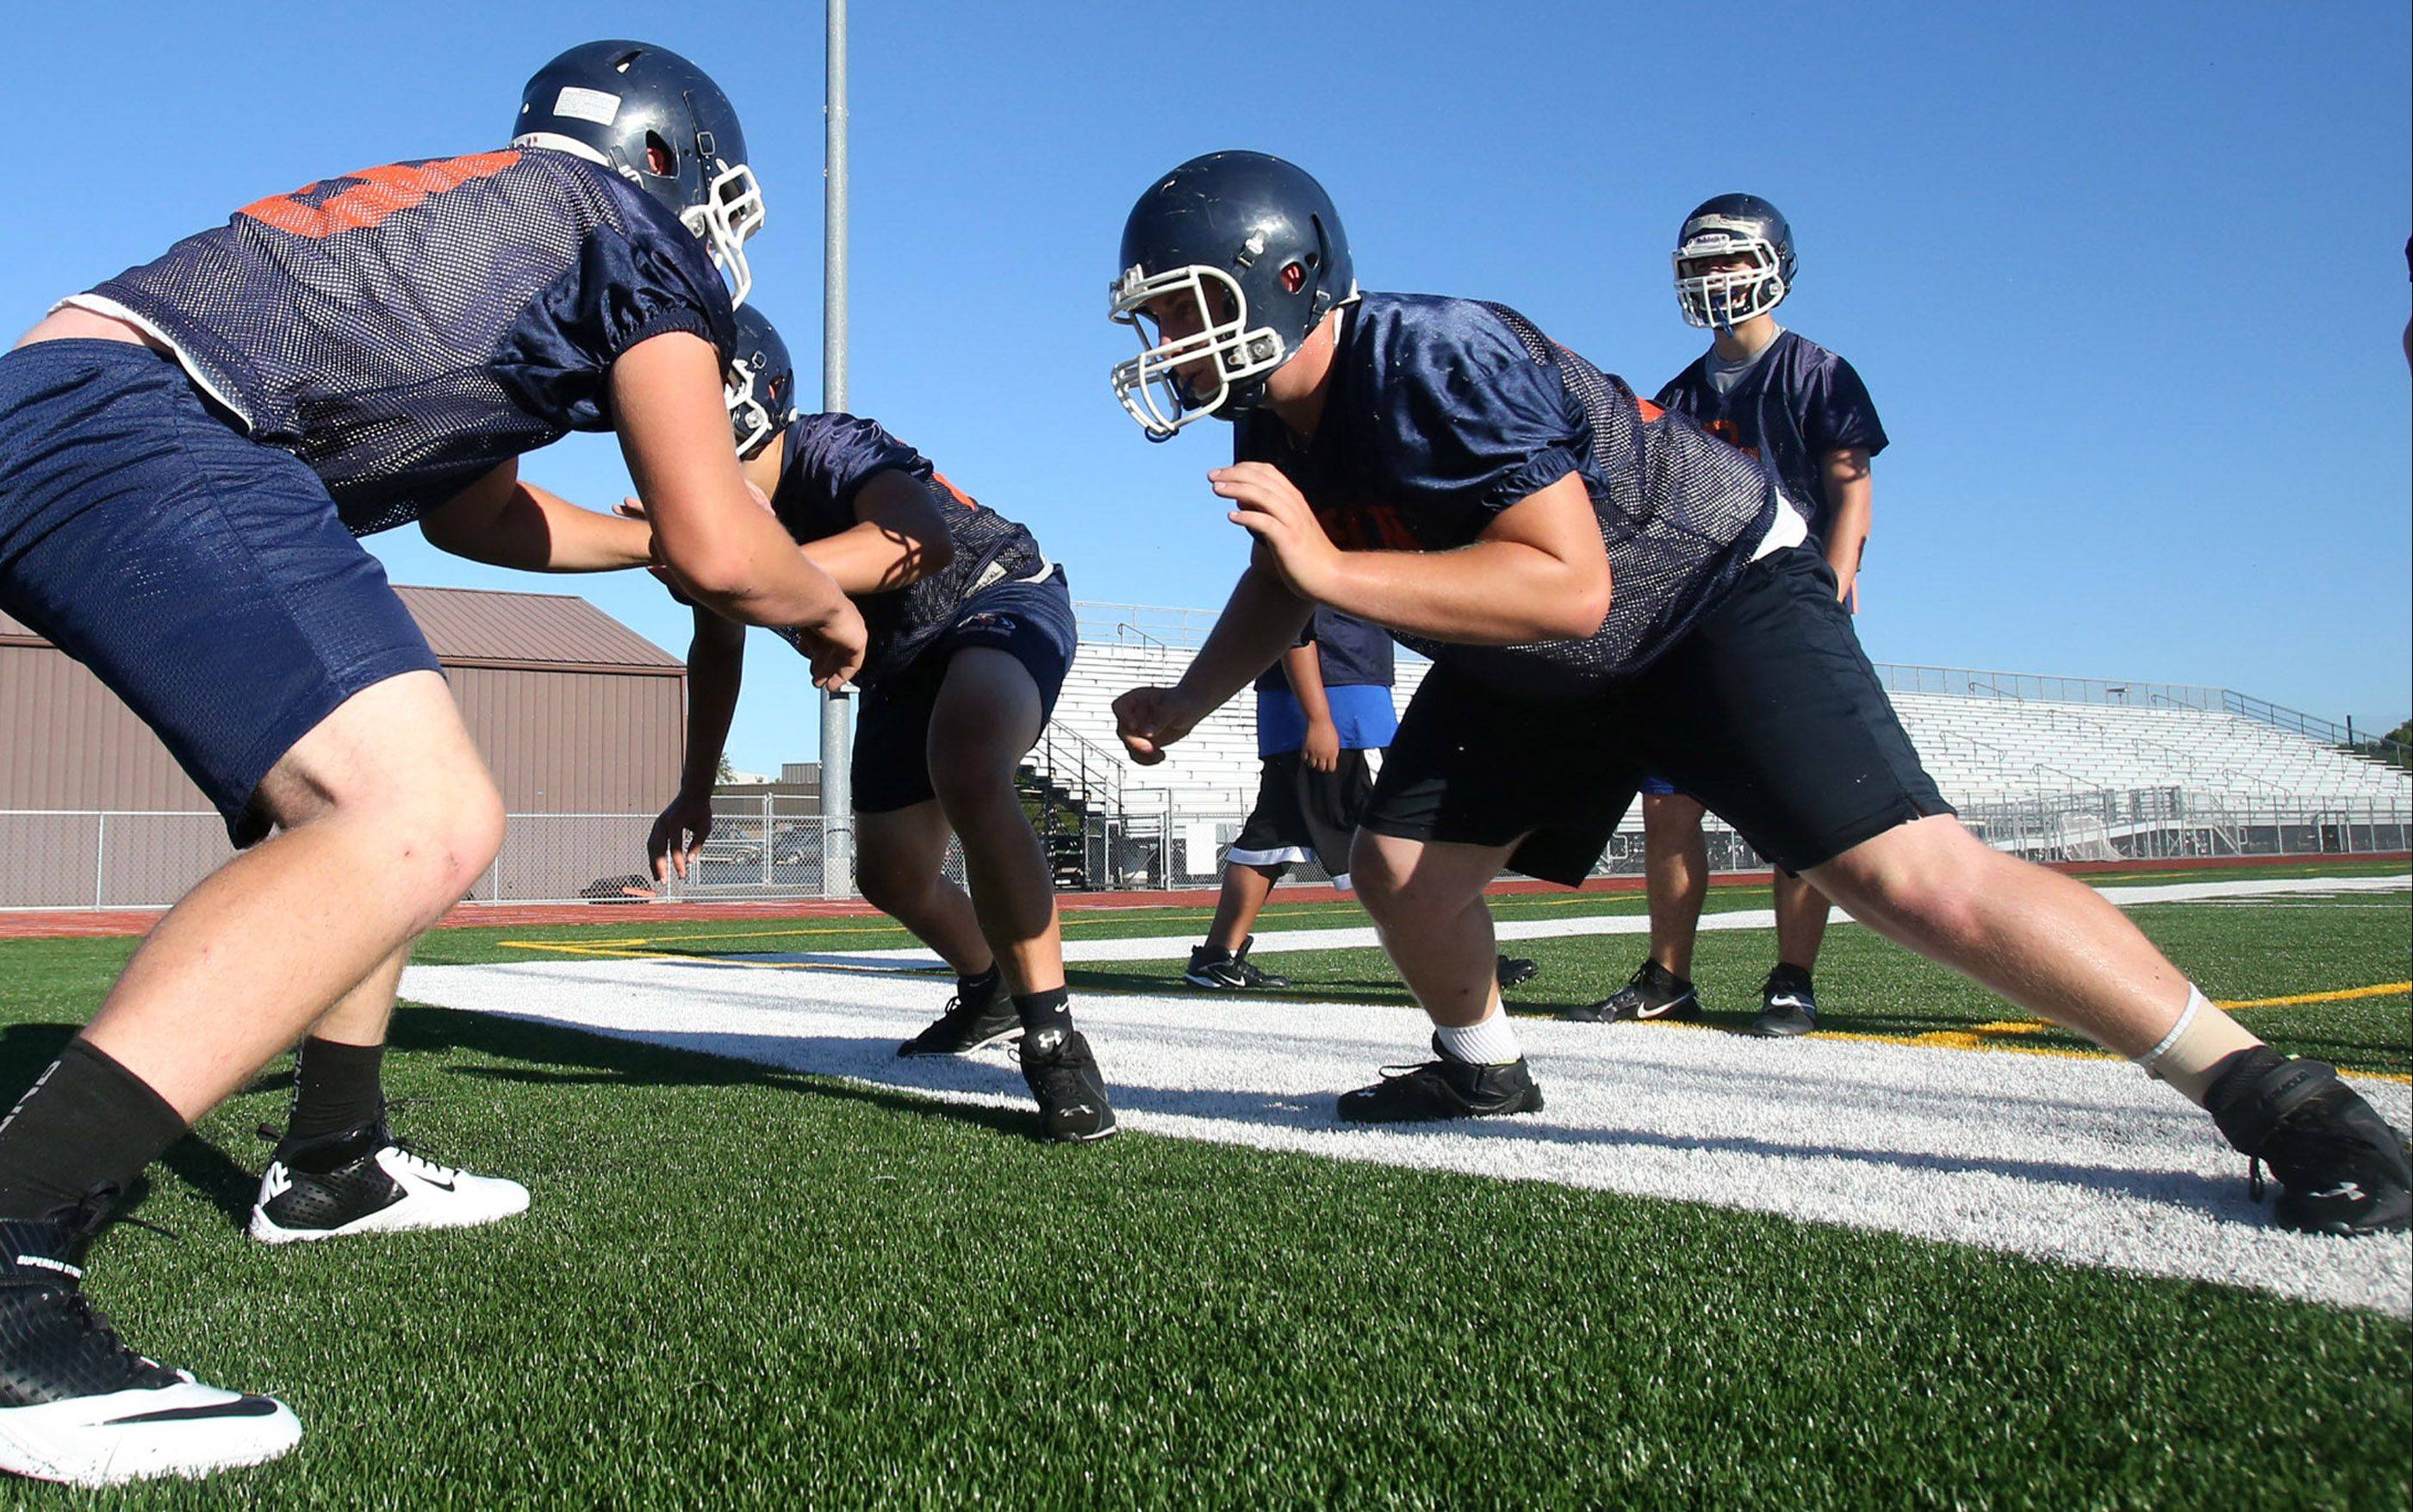 Tackle Aaron Schubert, right, works in drills against defensive players on the first day of practice for the 2013 season.